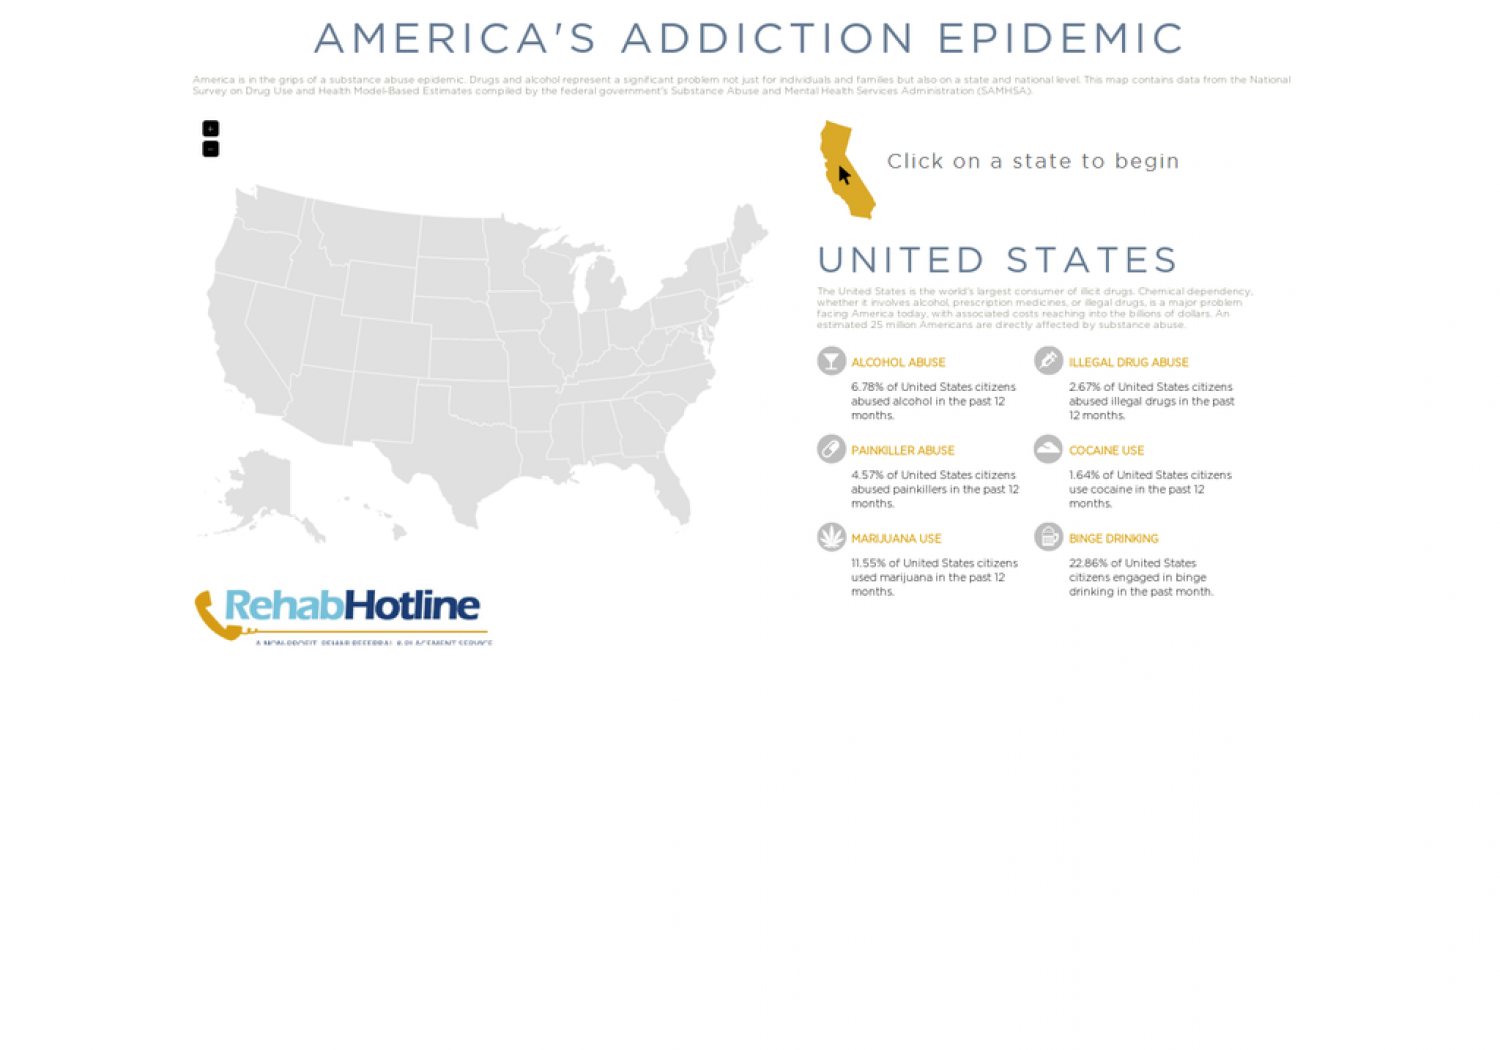 Americas Addiction Epidemic Infographic